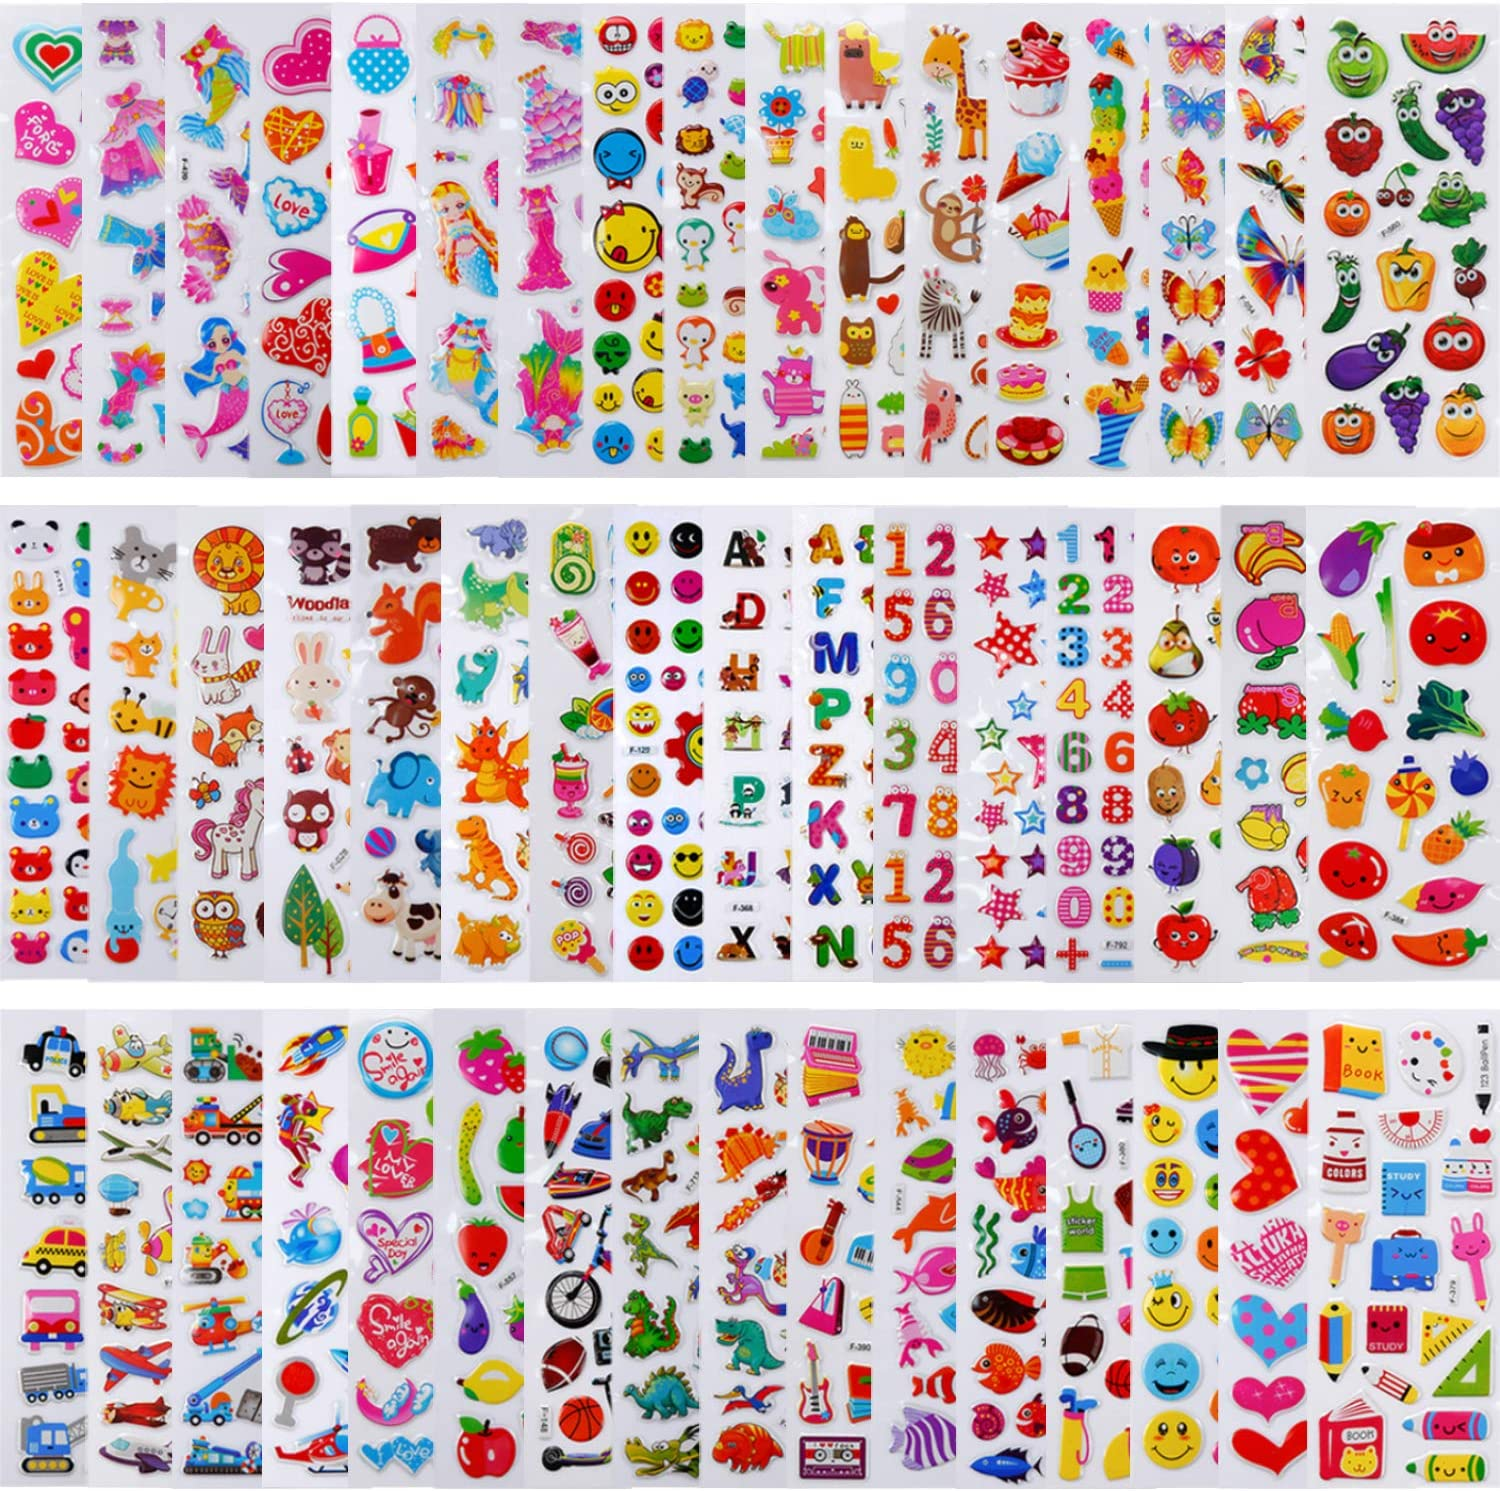 PuTwo Stickers 1000+, 50 Different Sheets Puffy Stickers, Cute Stickers, Kids Stickers, Sticker Sheets, 3D Stickers, Stickers for Kids, Stickers for Toddlers, Sticker for Birthday Gift, Kid's Crafts